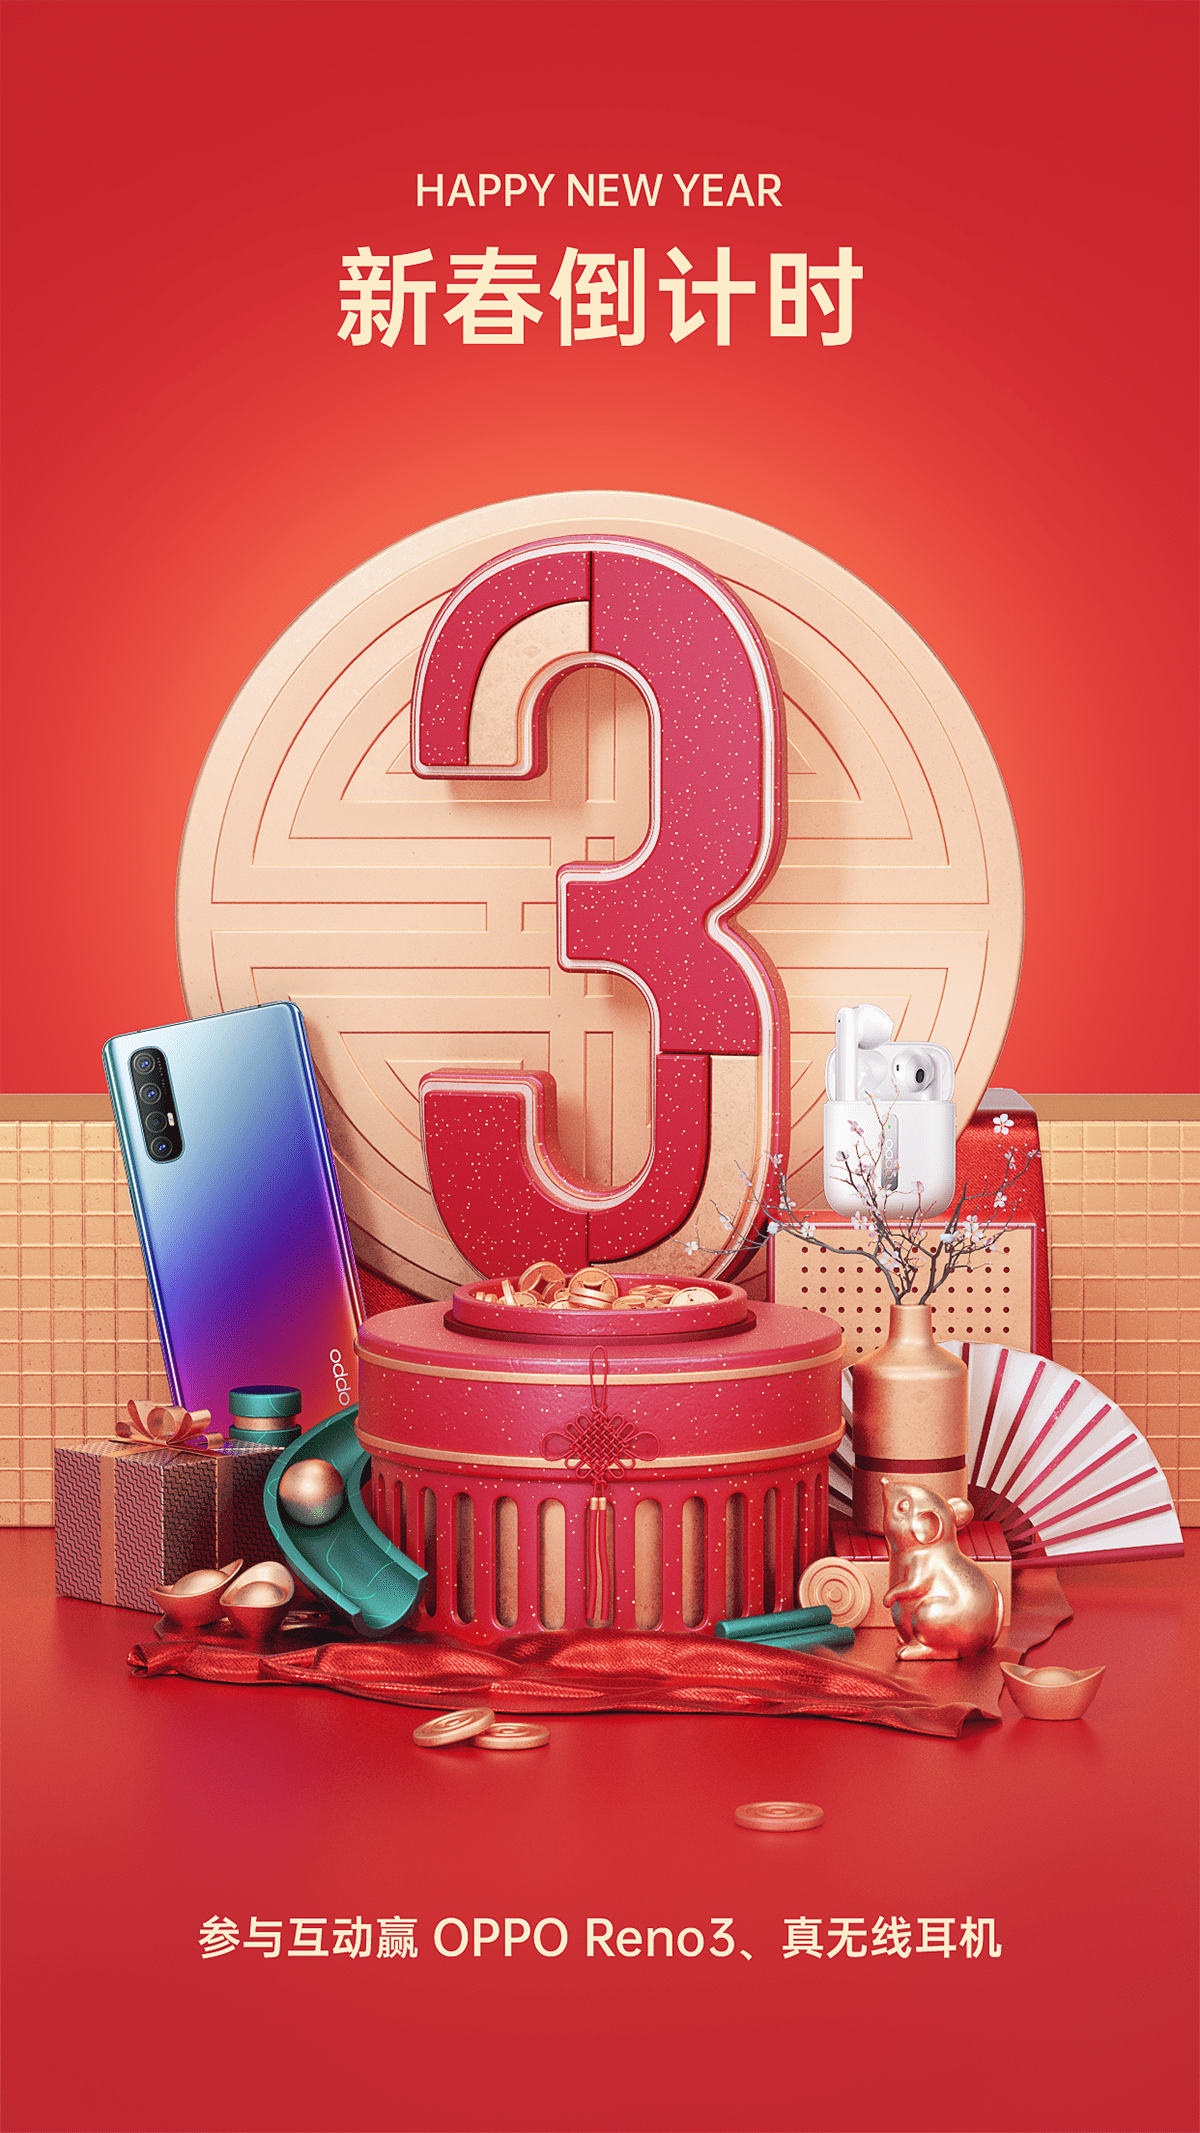 Oppo Happy Chinese New Year Countdown Poster On Behance In 2020 New Years Poster Banner Design Inspiration Promotional Design